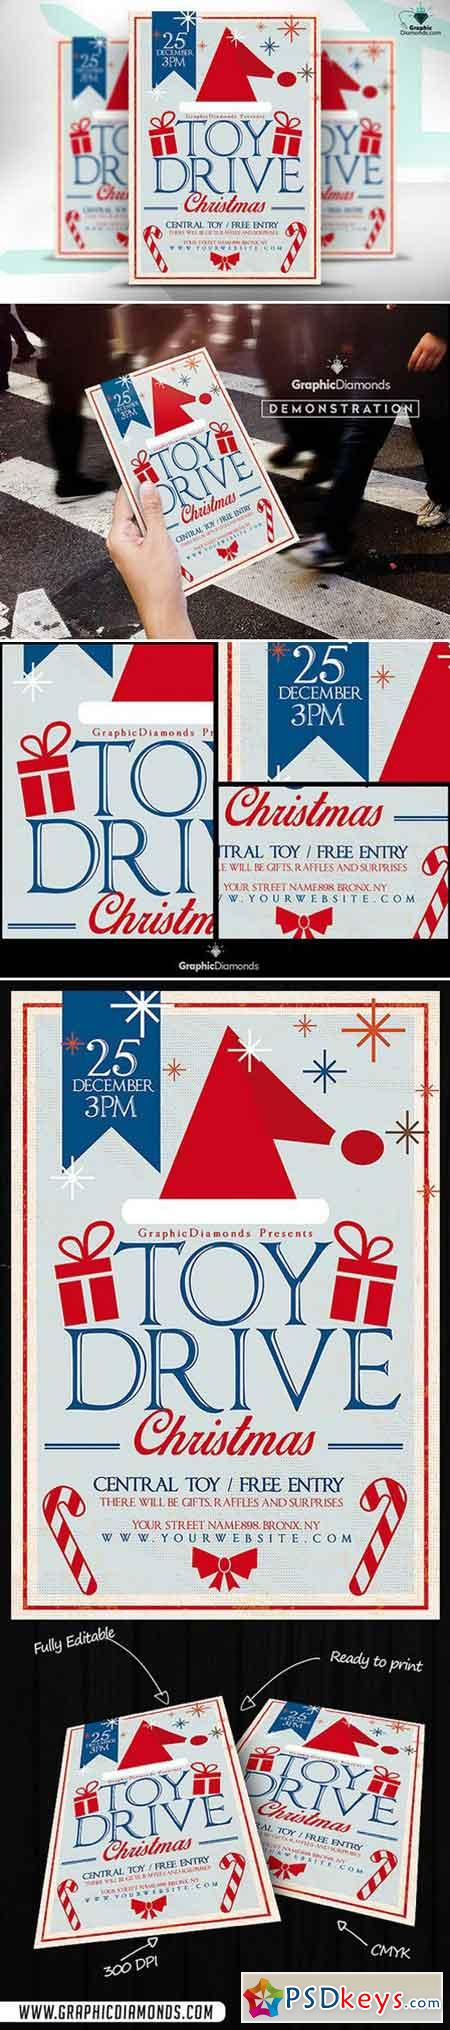 Toy Drive Christmas Flyer 469017